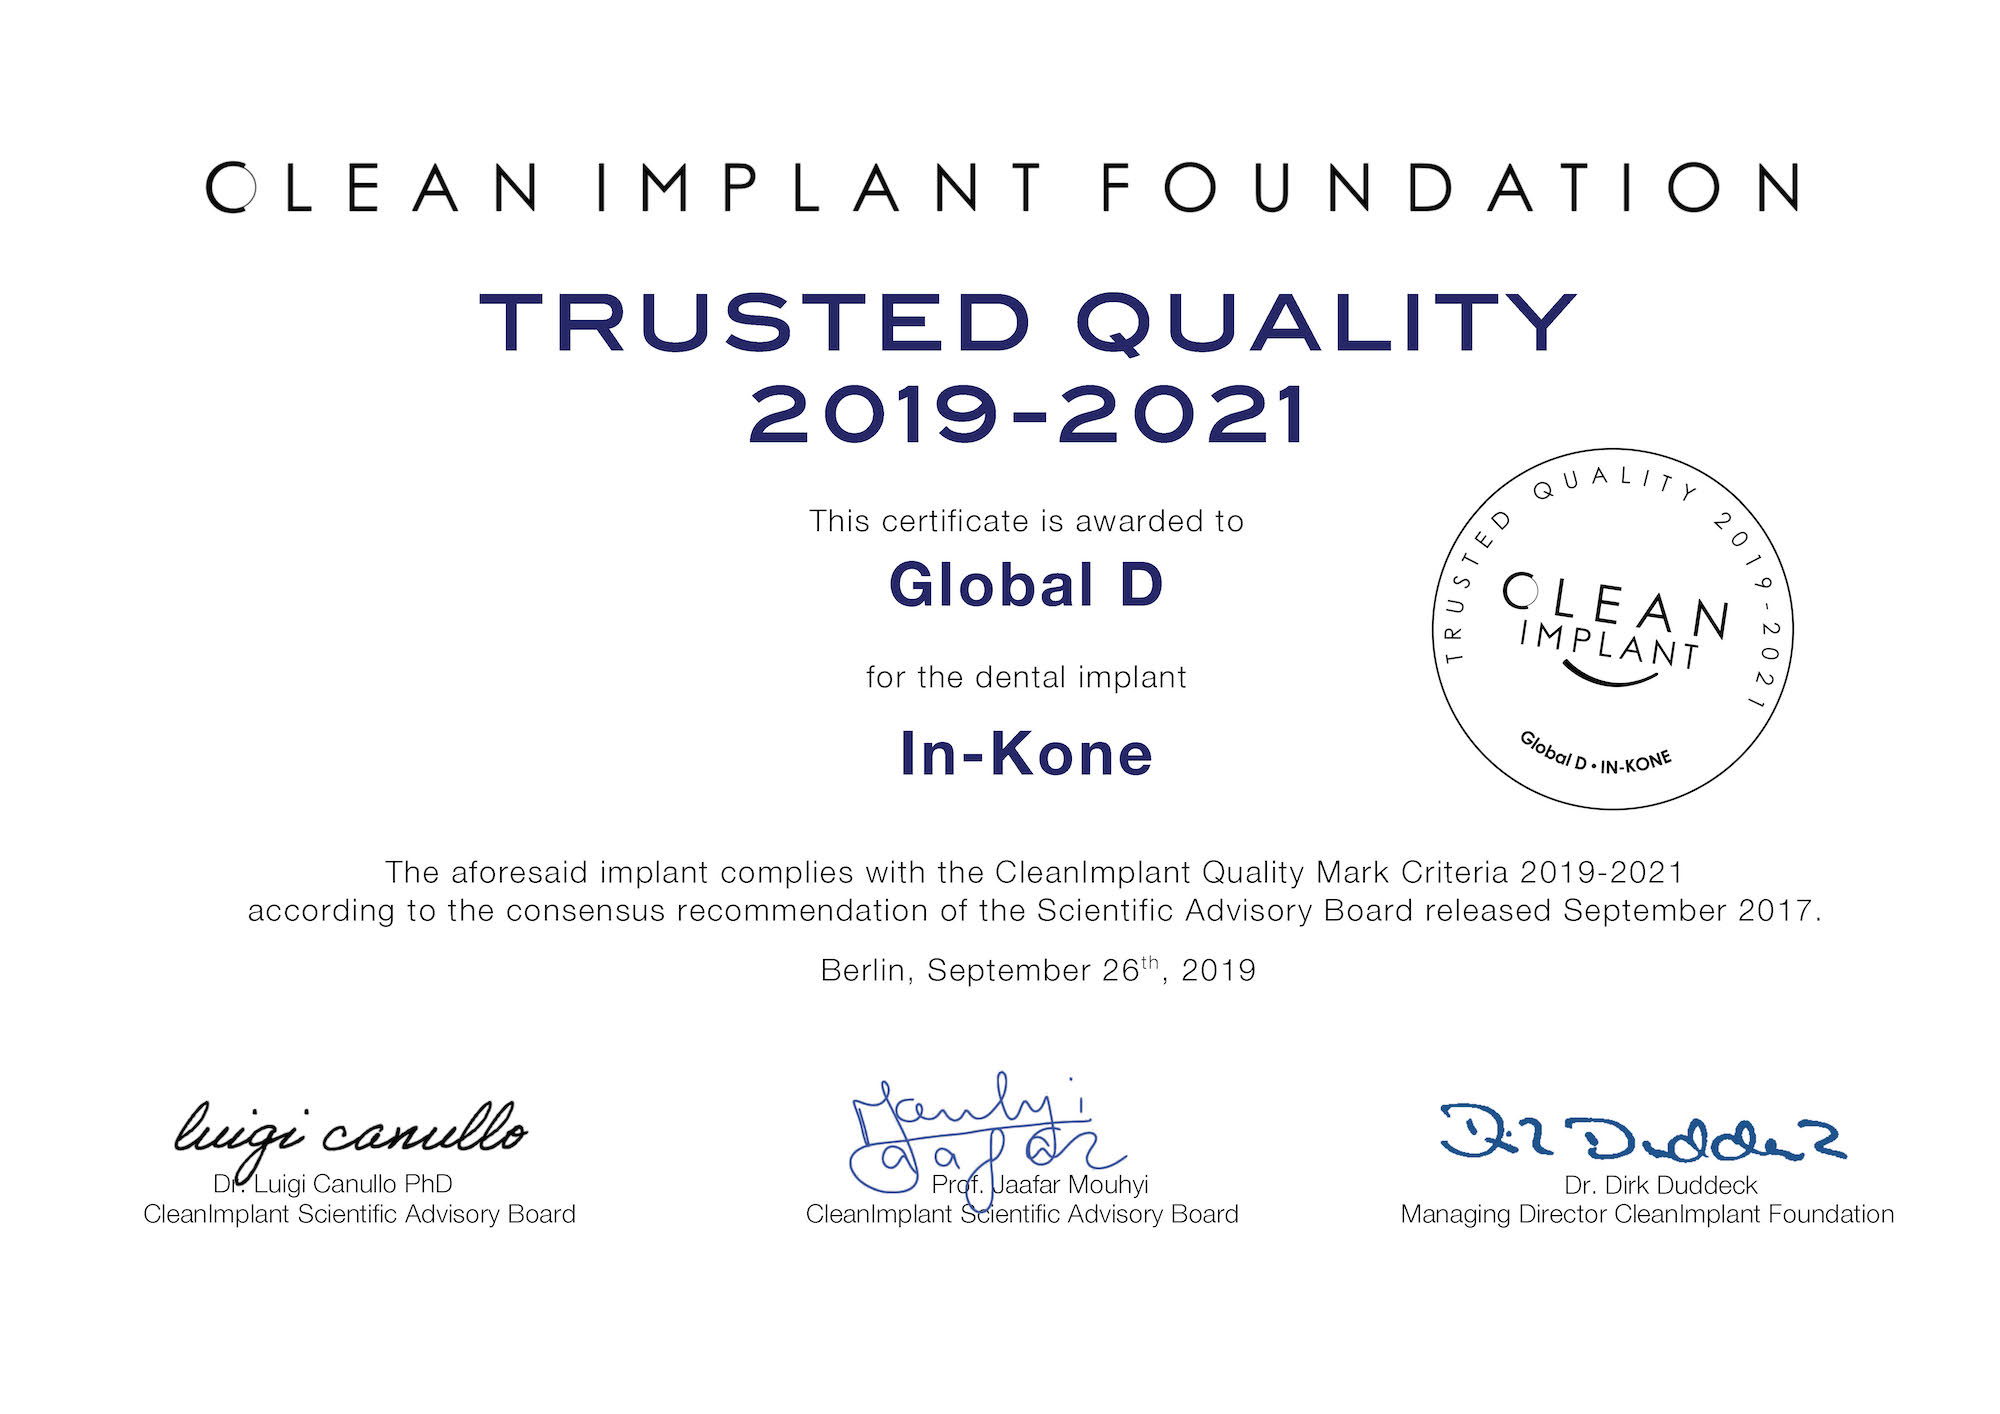 Clinical Experiences_In-Kone®Certification Trusted Quality